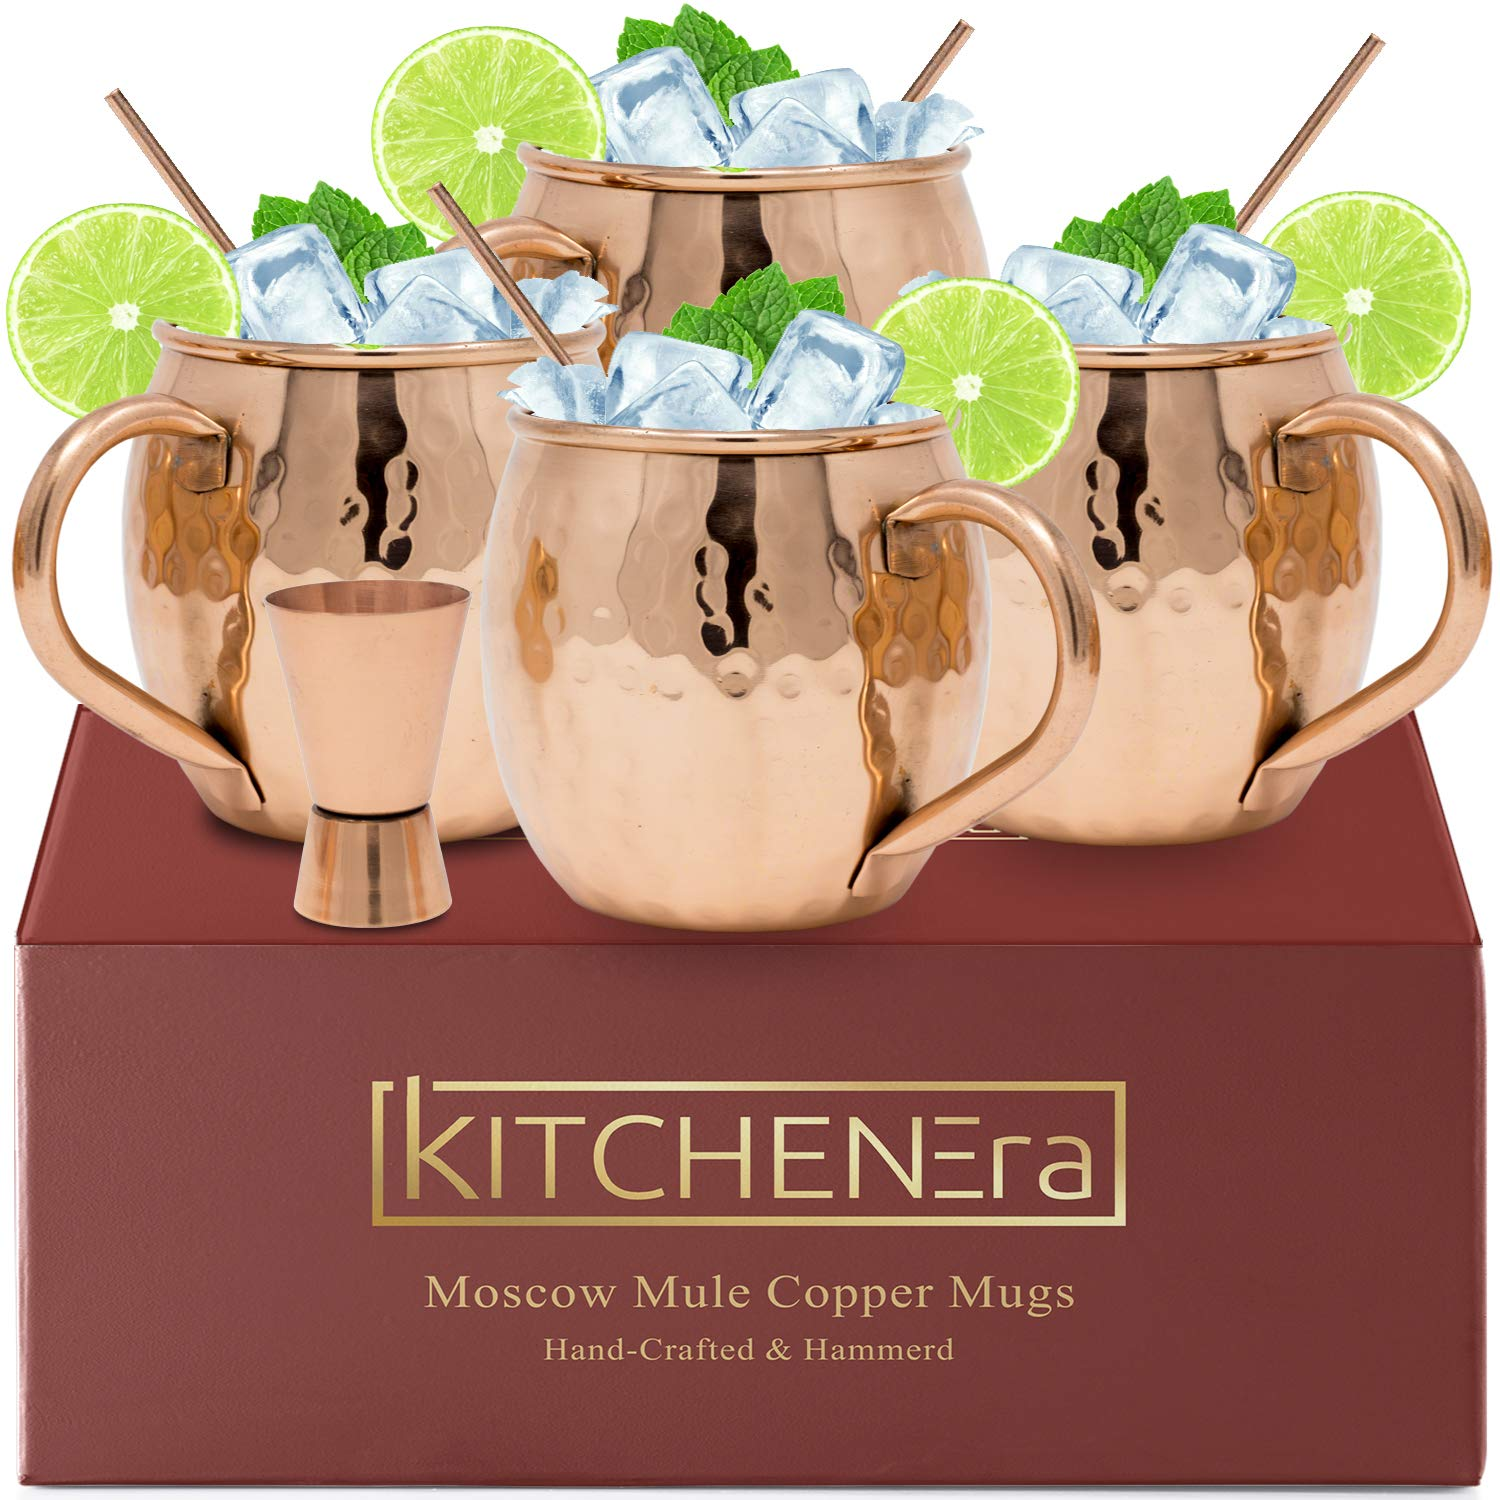 Moscow Mule Copper Mugs - 100% Copper HandCrafted Hammered Moscow Mule Copper Mugs Set of 4 - FREE Jigger - FREE Copper Straws by KitchenEra